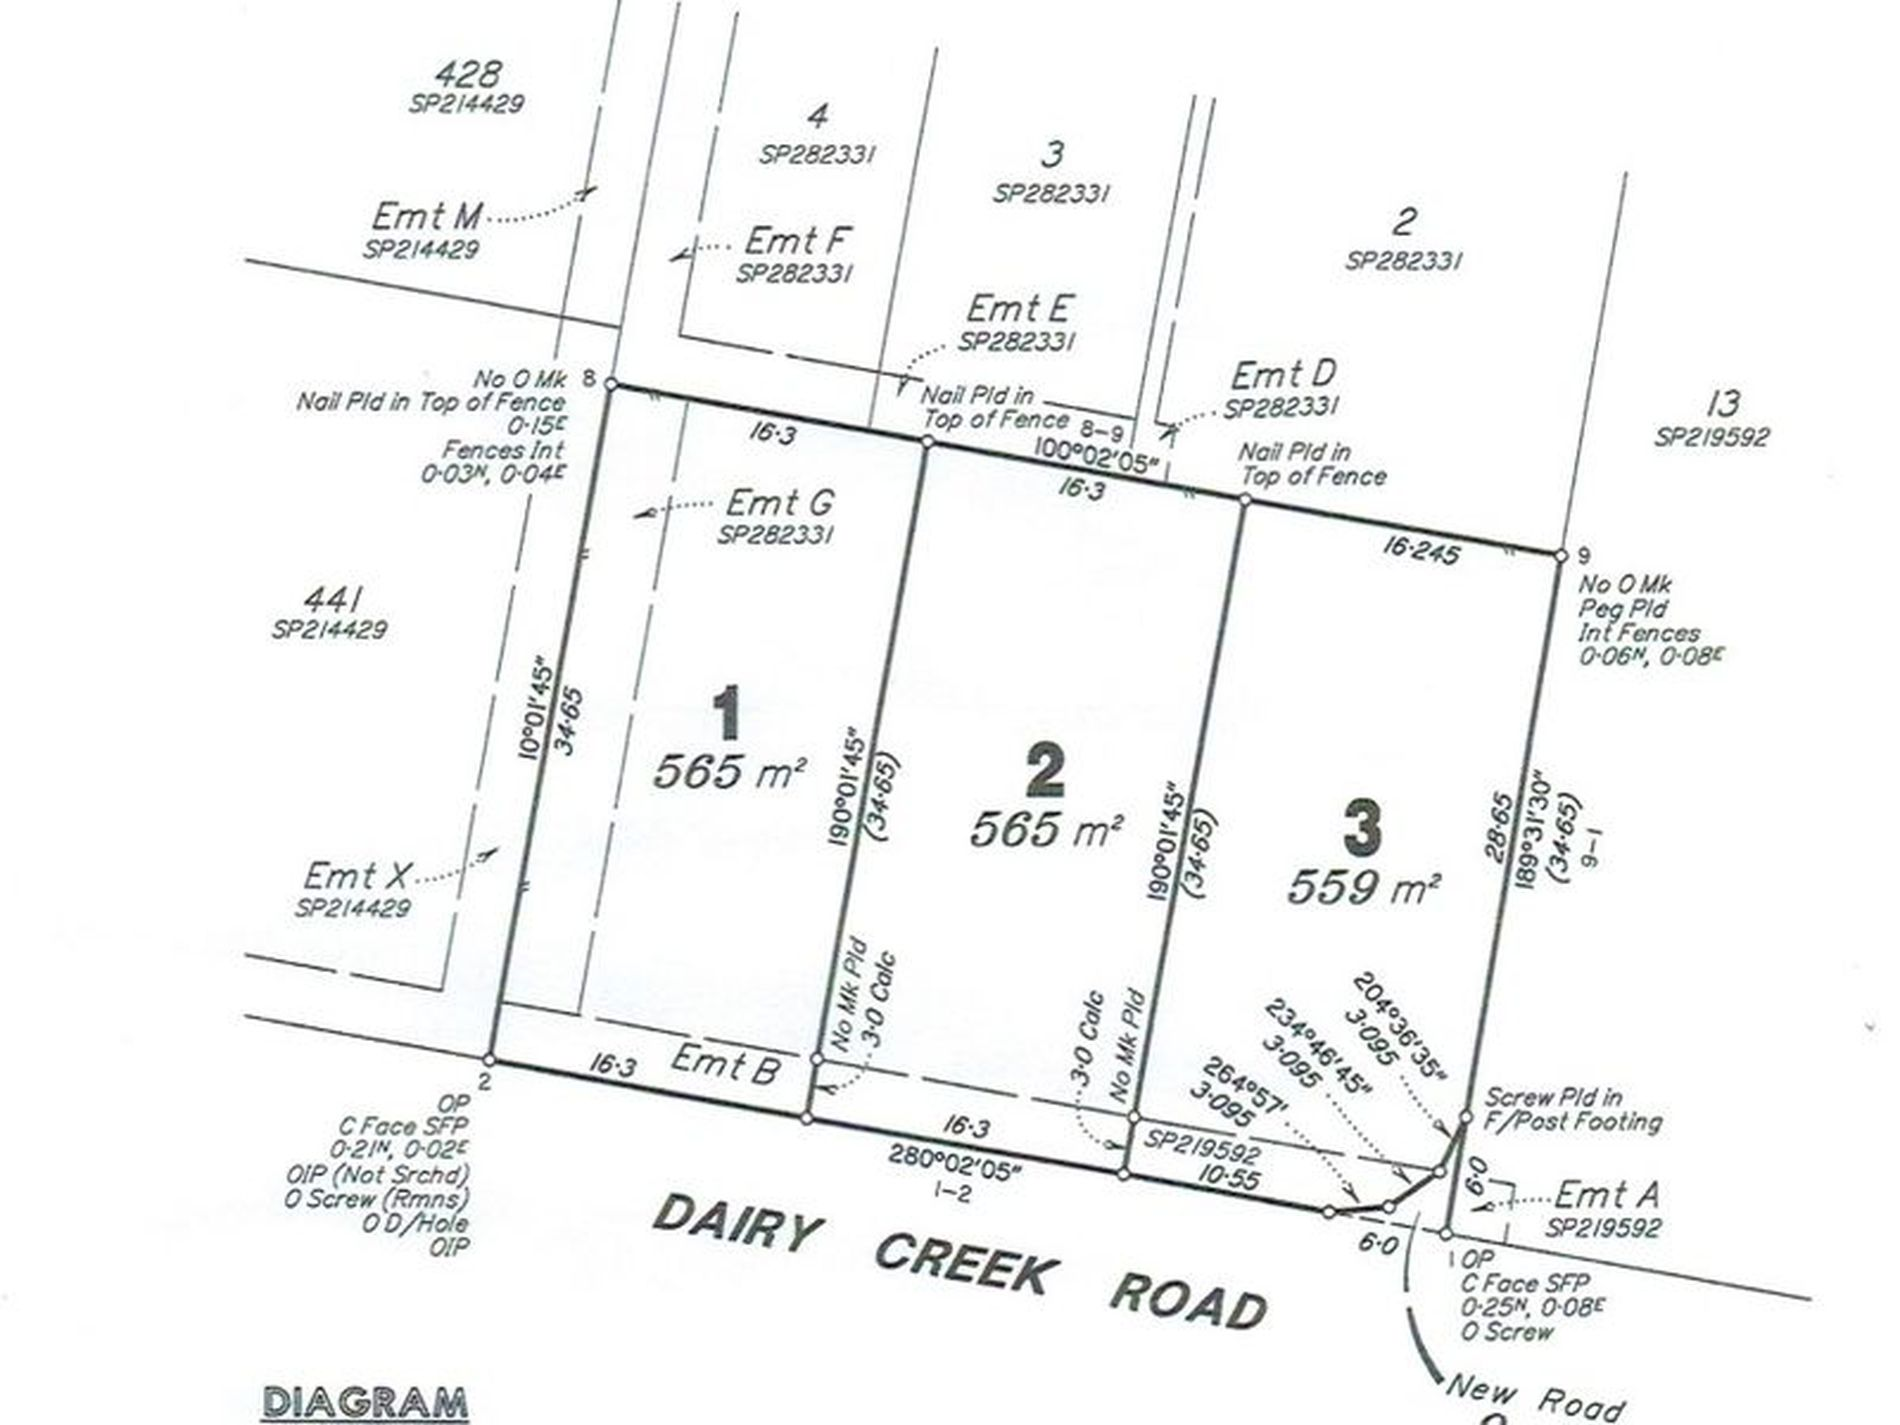 Lot 1, 298 Dairy Creek Road, Waterford